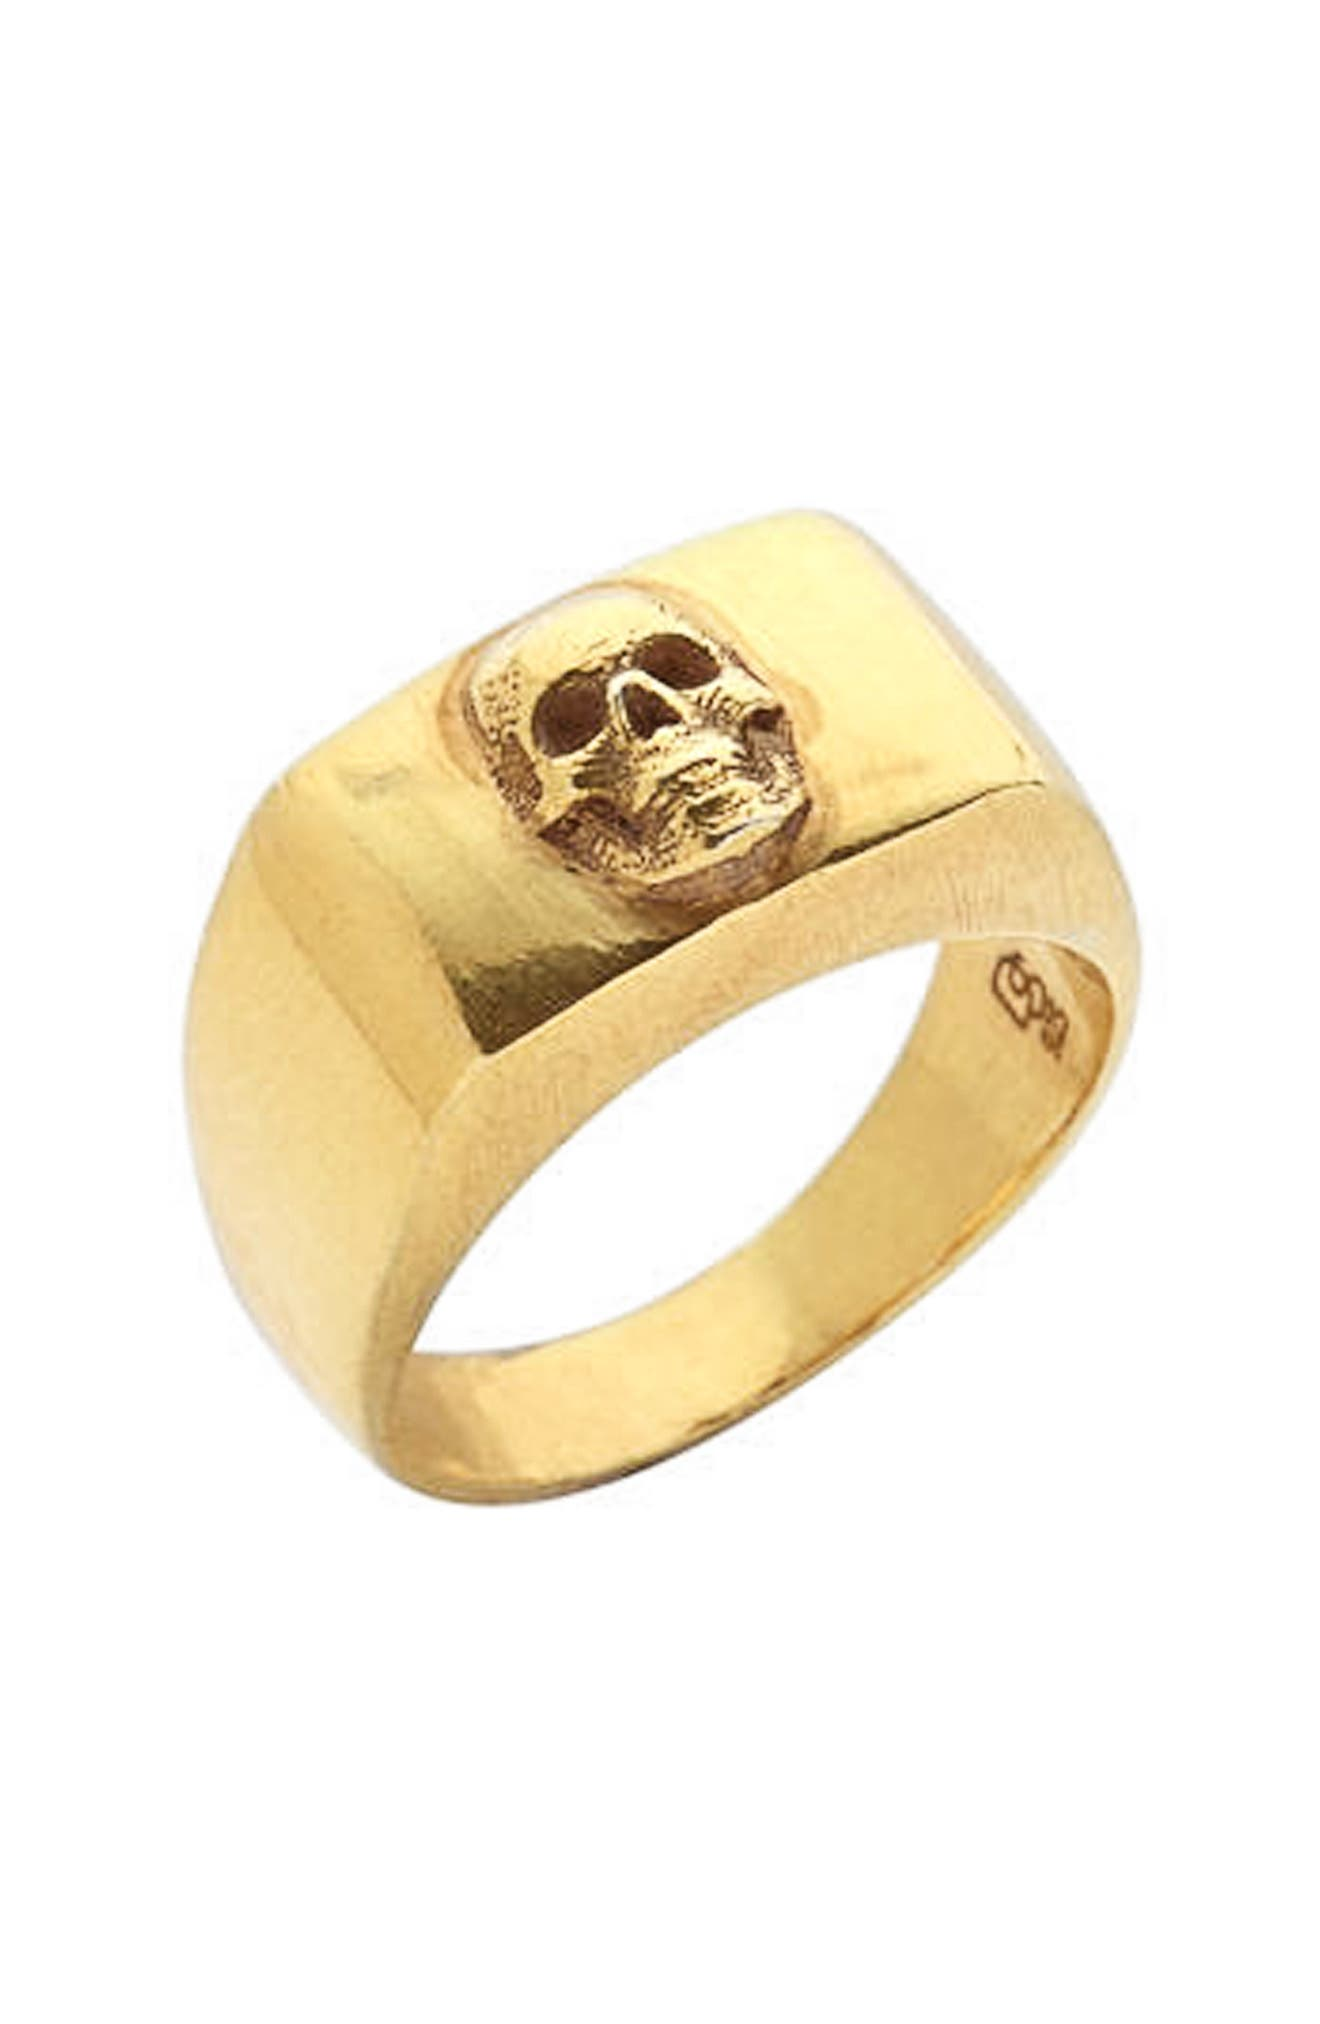 Alternate Image 1 Selected - Degs & Sal Skull Ring